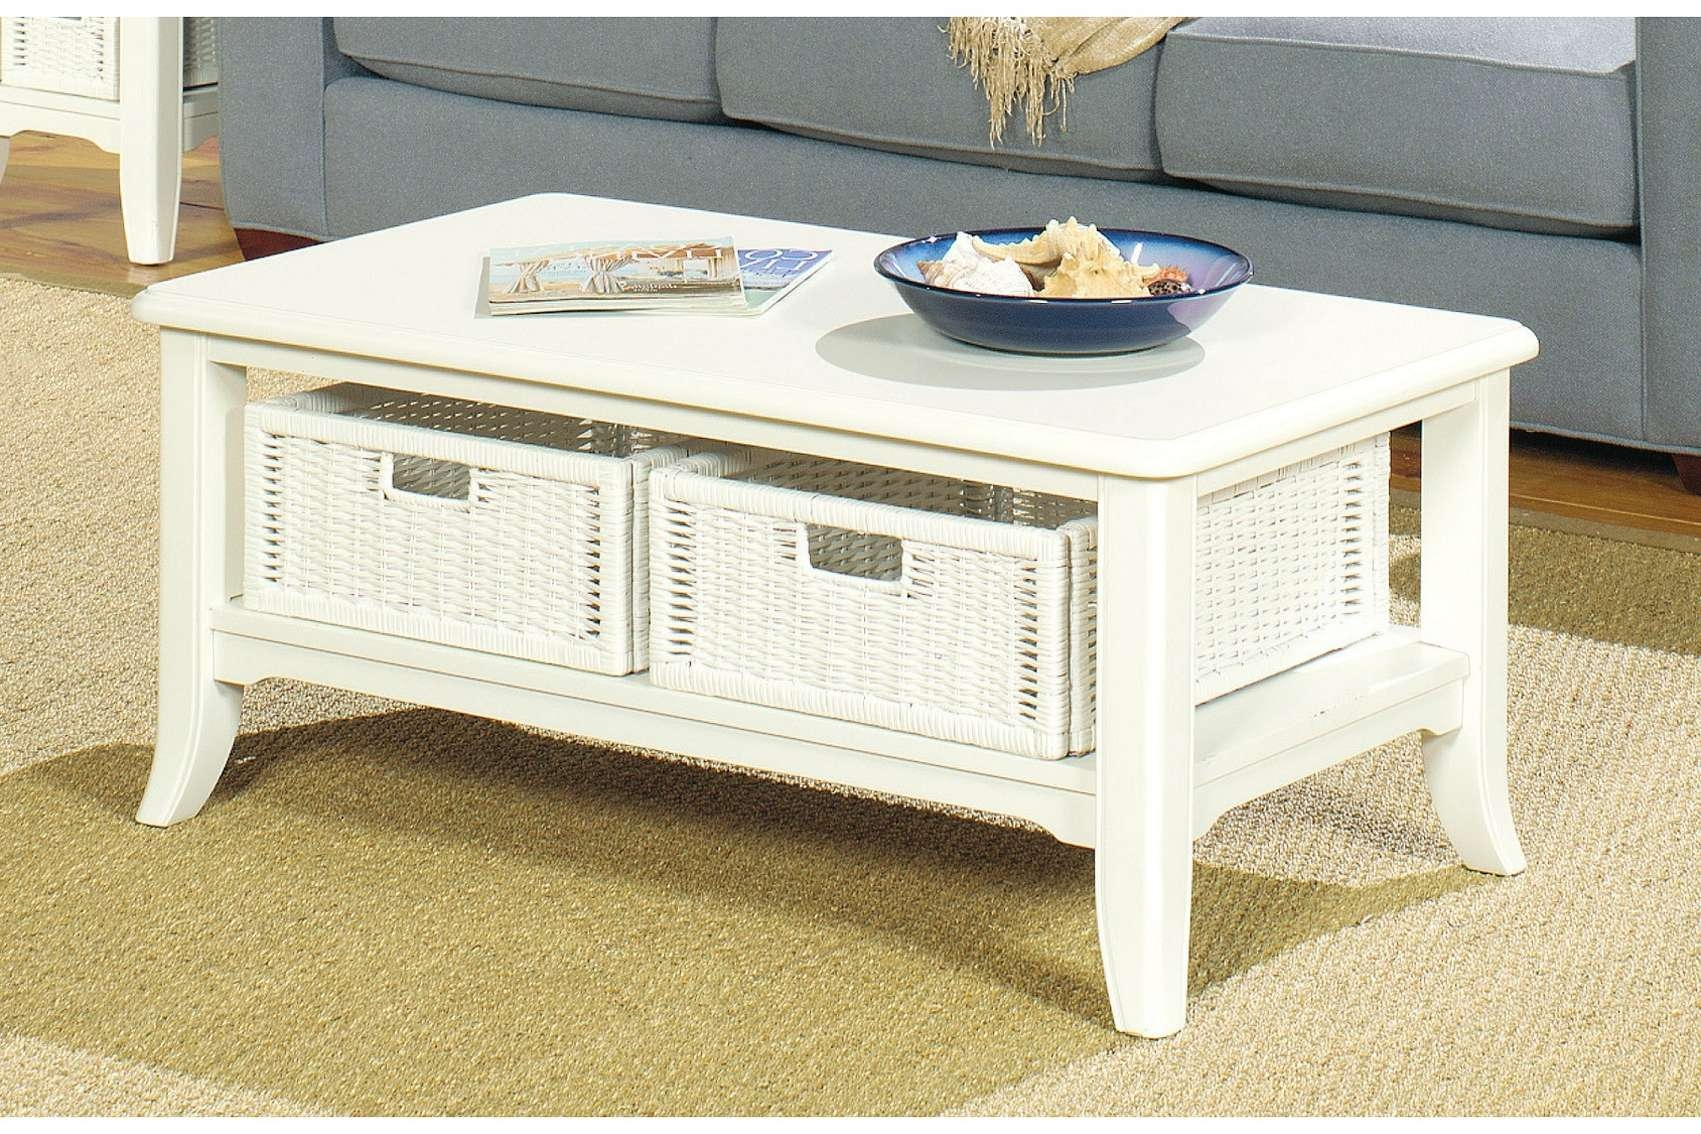 Coffee Table : Wood Coffee Table Square Side Table Designer End Within Favorite Cream Coffee Tables With Drawers (View 17 of 20)